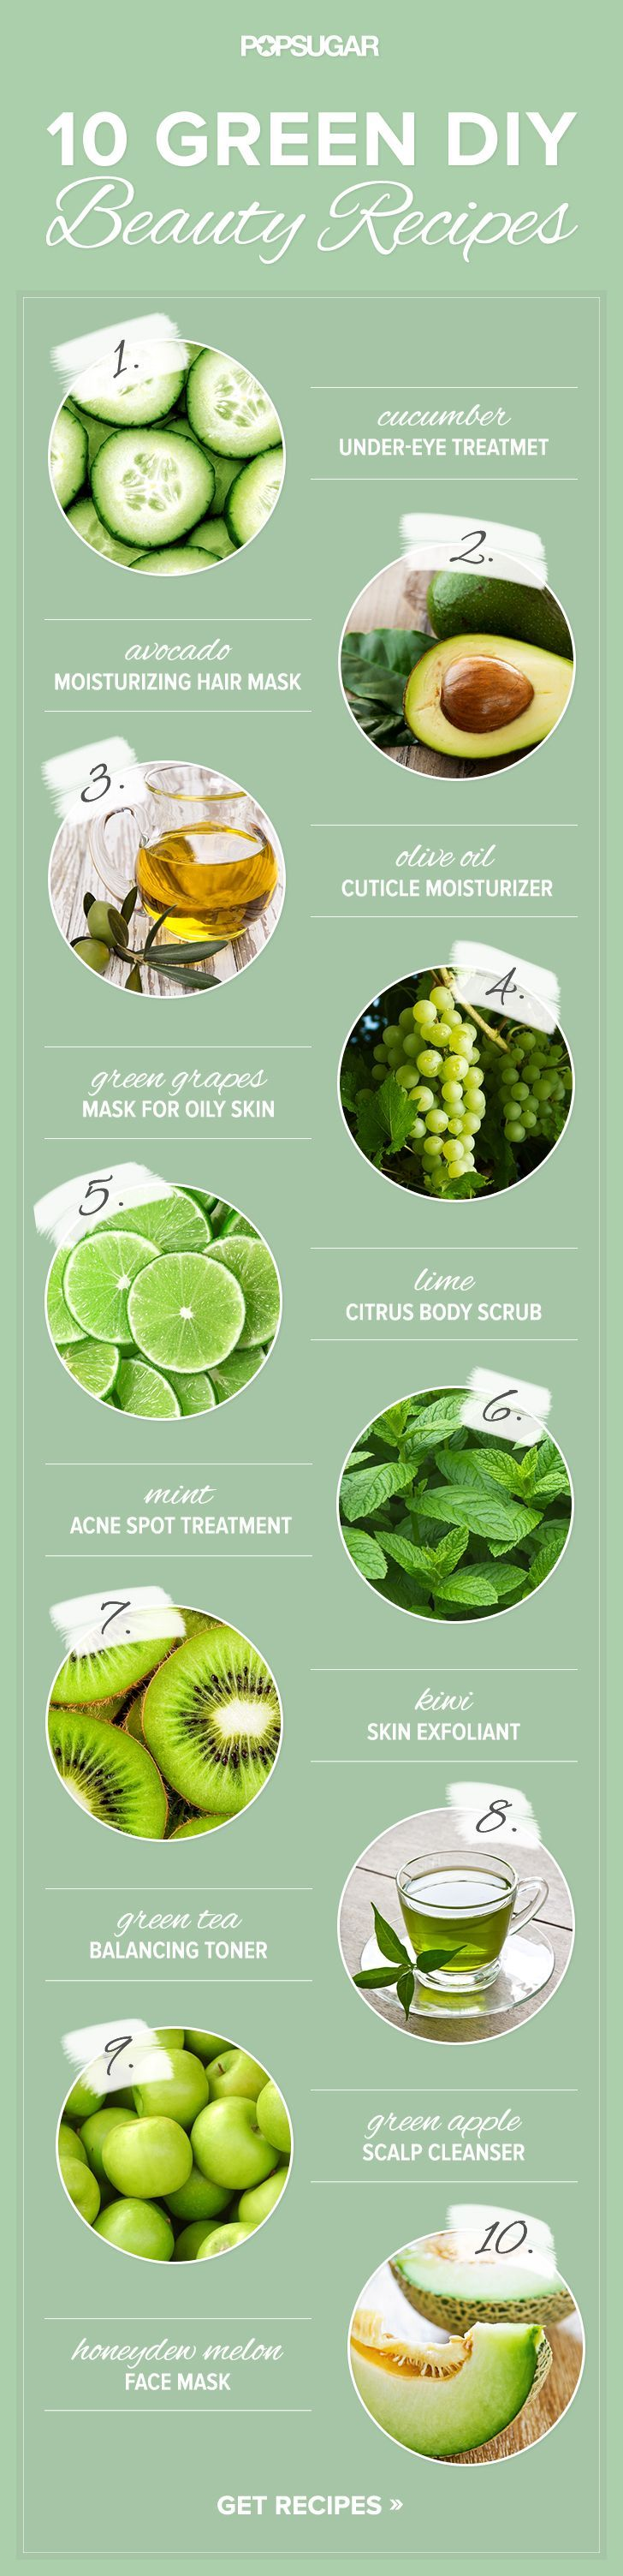 10 Beauty DIY Recipes That Are Green in Every Way ......... 10 beauty recipes that harness the skin-saving characteristics of our favorite foods. But in addition to being great for your complexion and the environment, these at-home mixers are also green . . . really green.